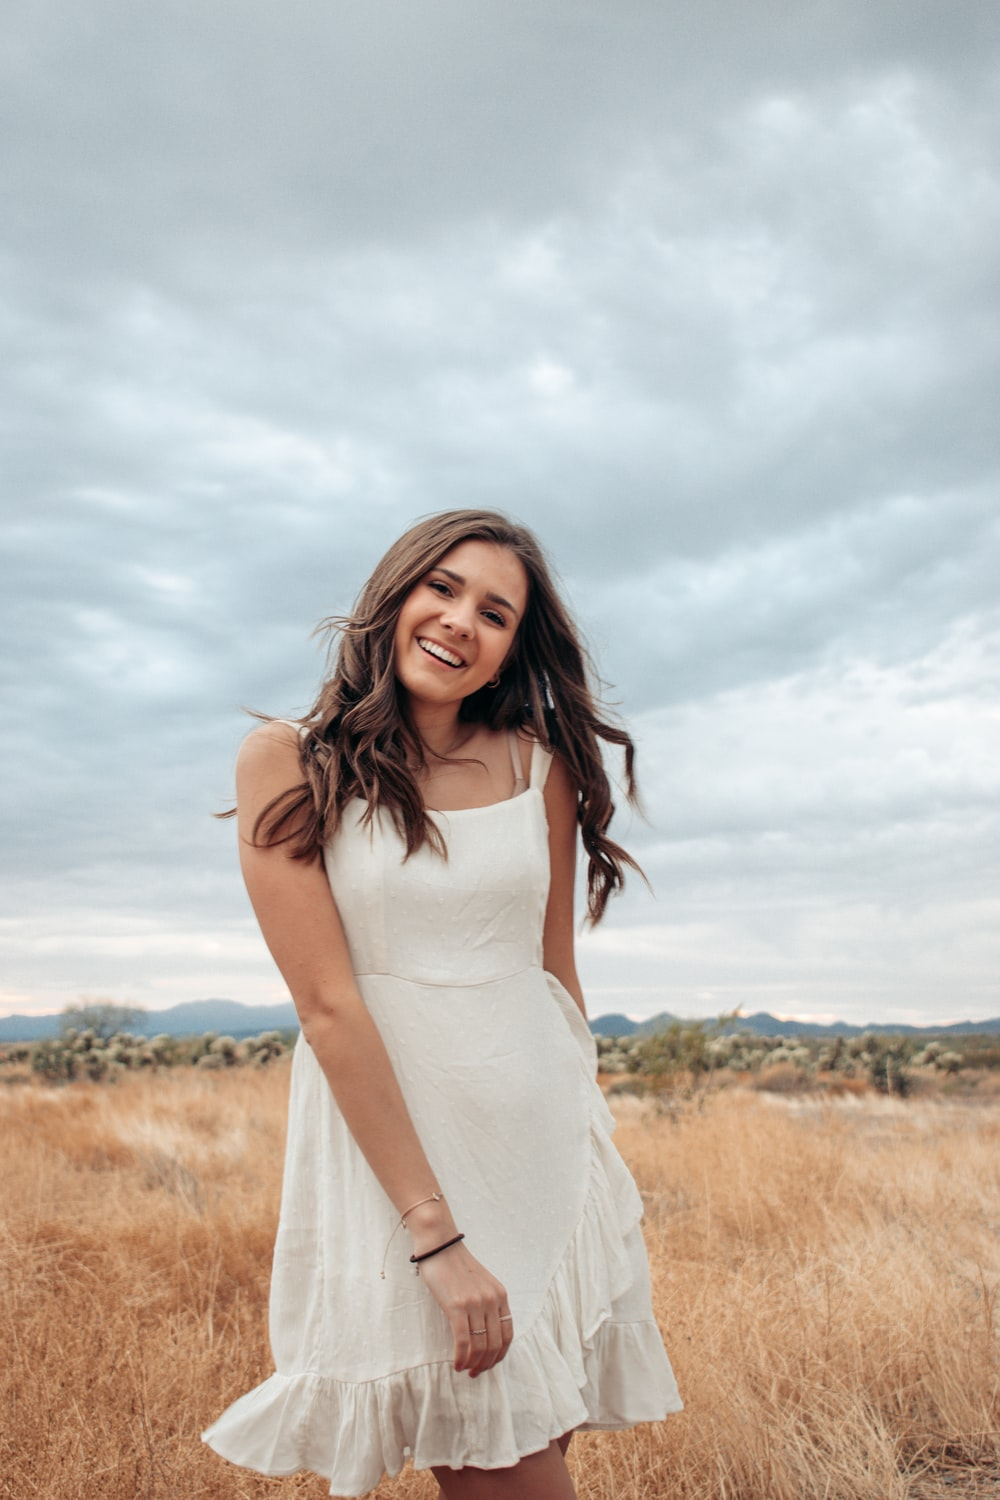 woman in white sleeveless dress standing on brown grass field during daytime